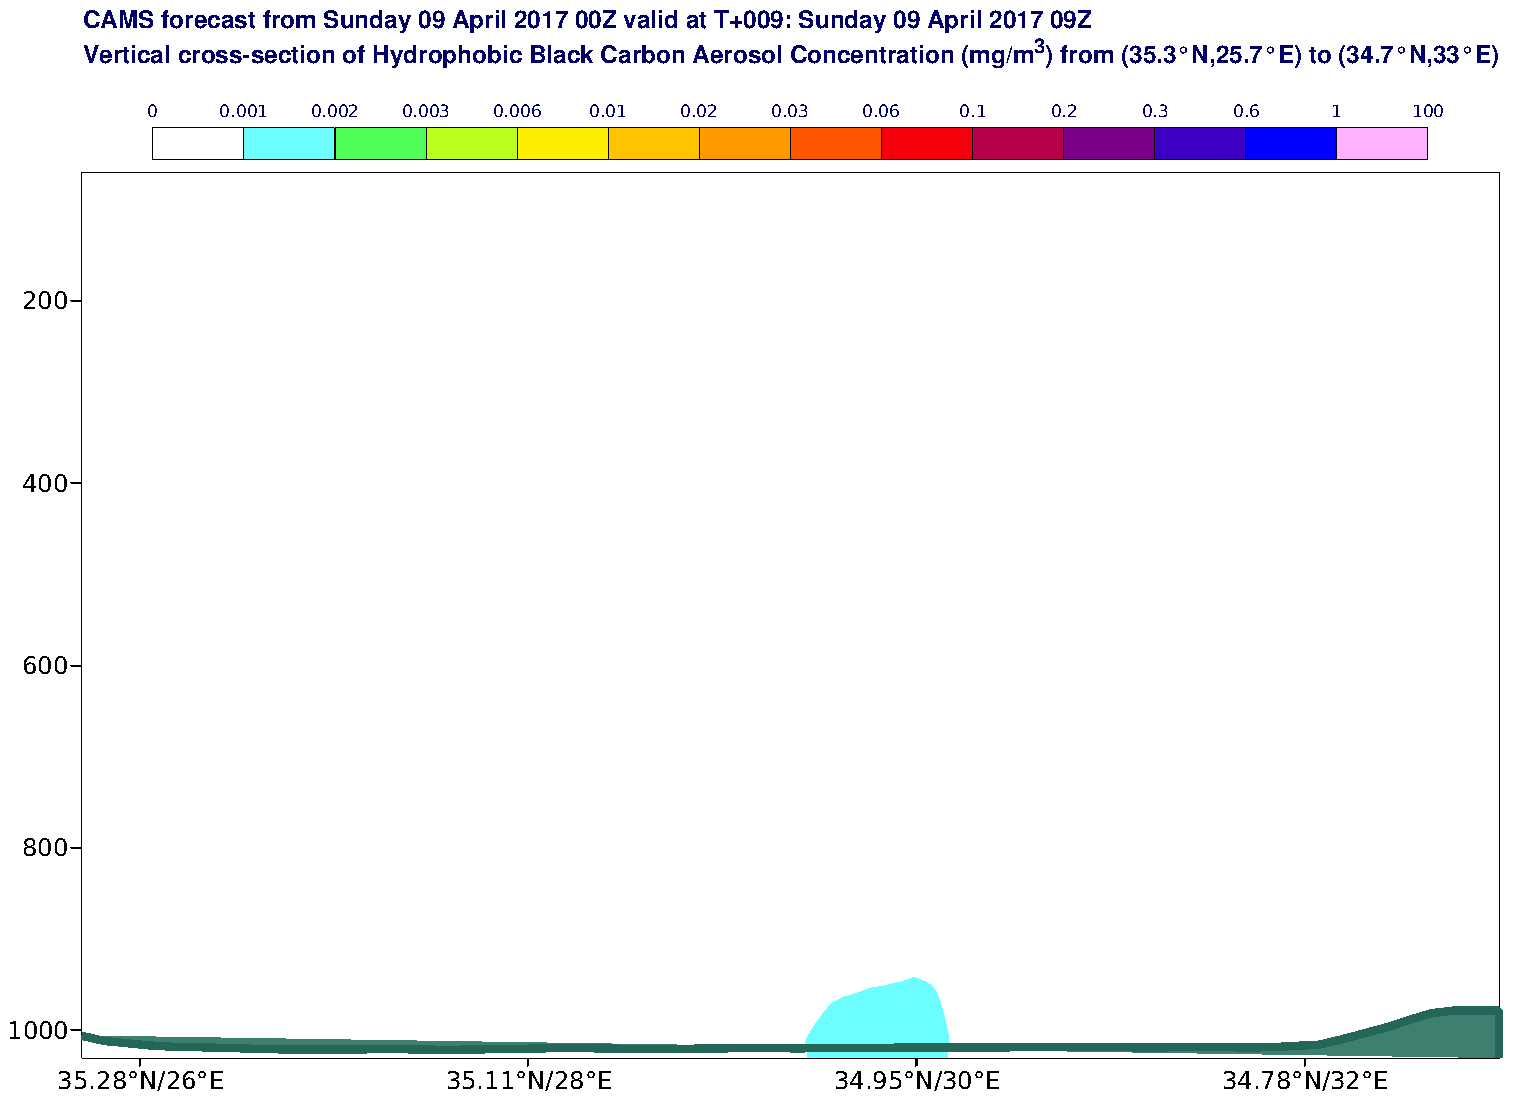 Vertical cross-section of Hydrophobic Black Carbon Aerosol Concentration (mg/m3) valid at T9 - 2017-04-09 09:00